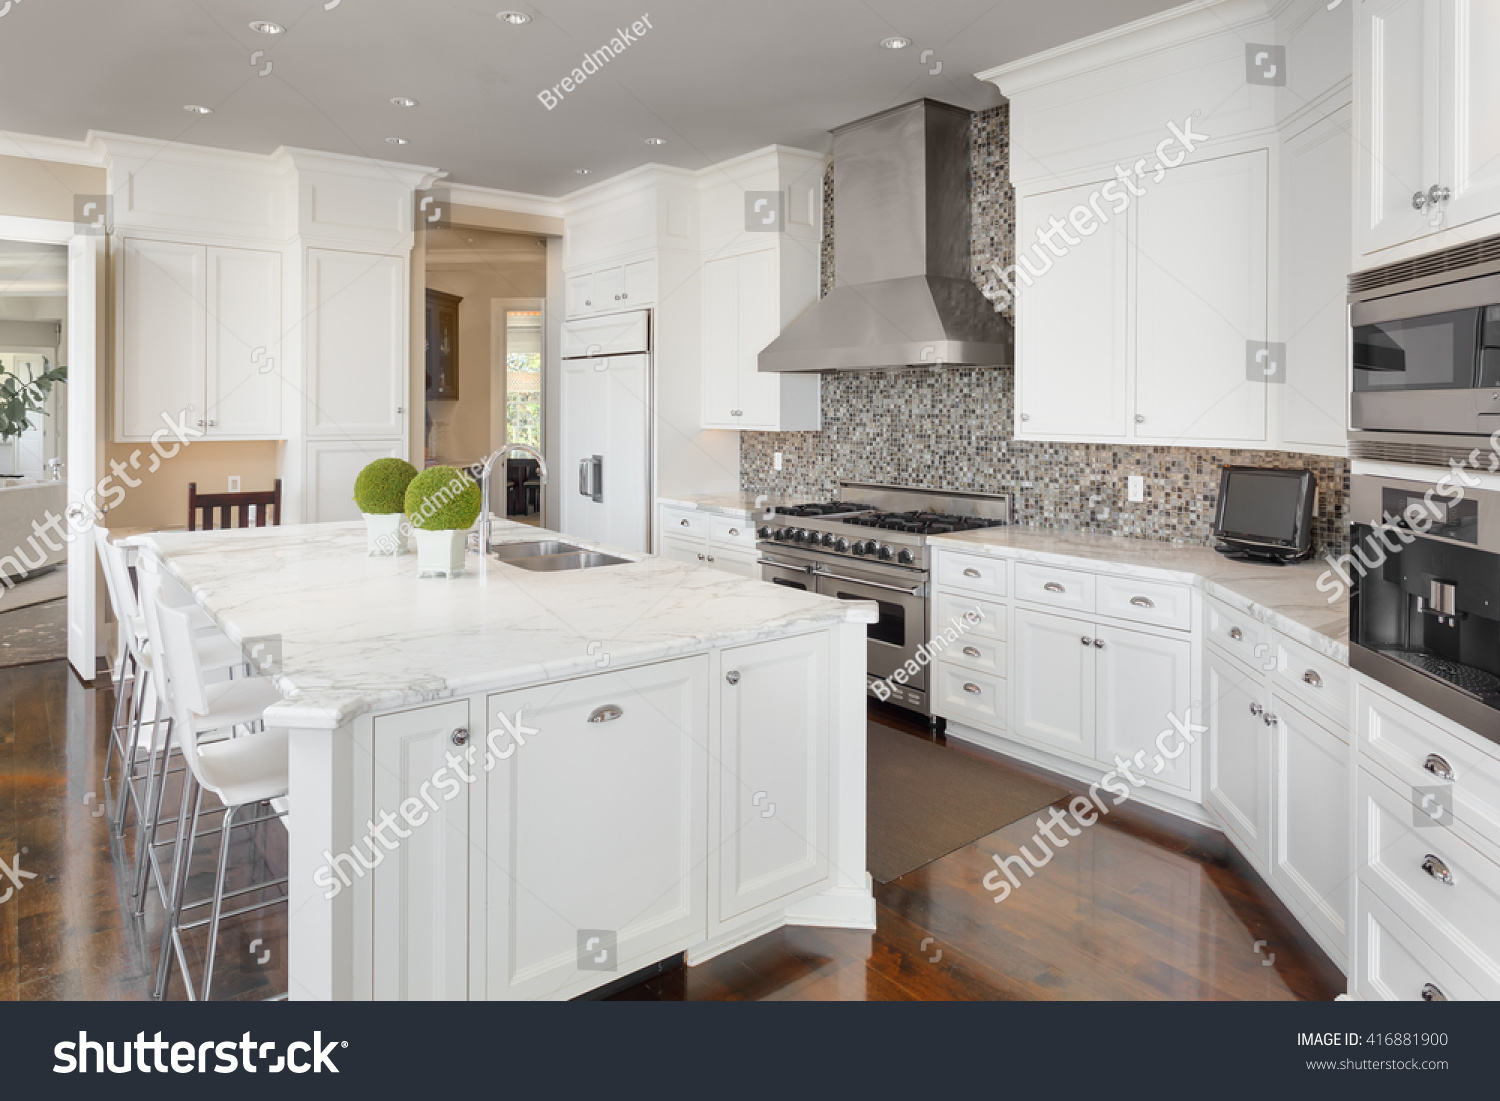 Kitchen Interior Island Sink Cabinets Oven Stock Photo 416881900  Shutterstock